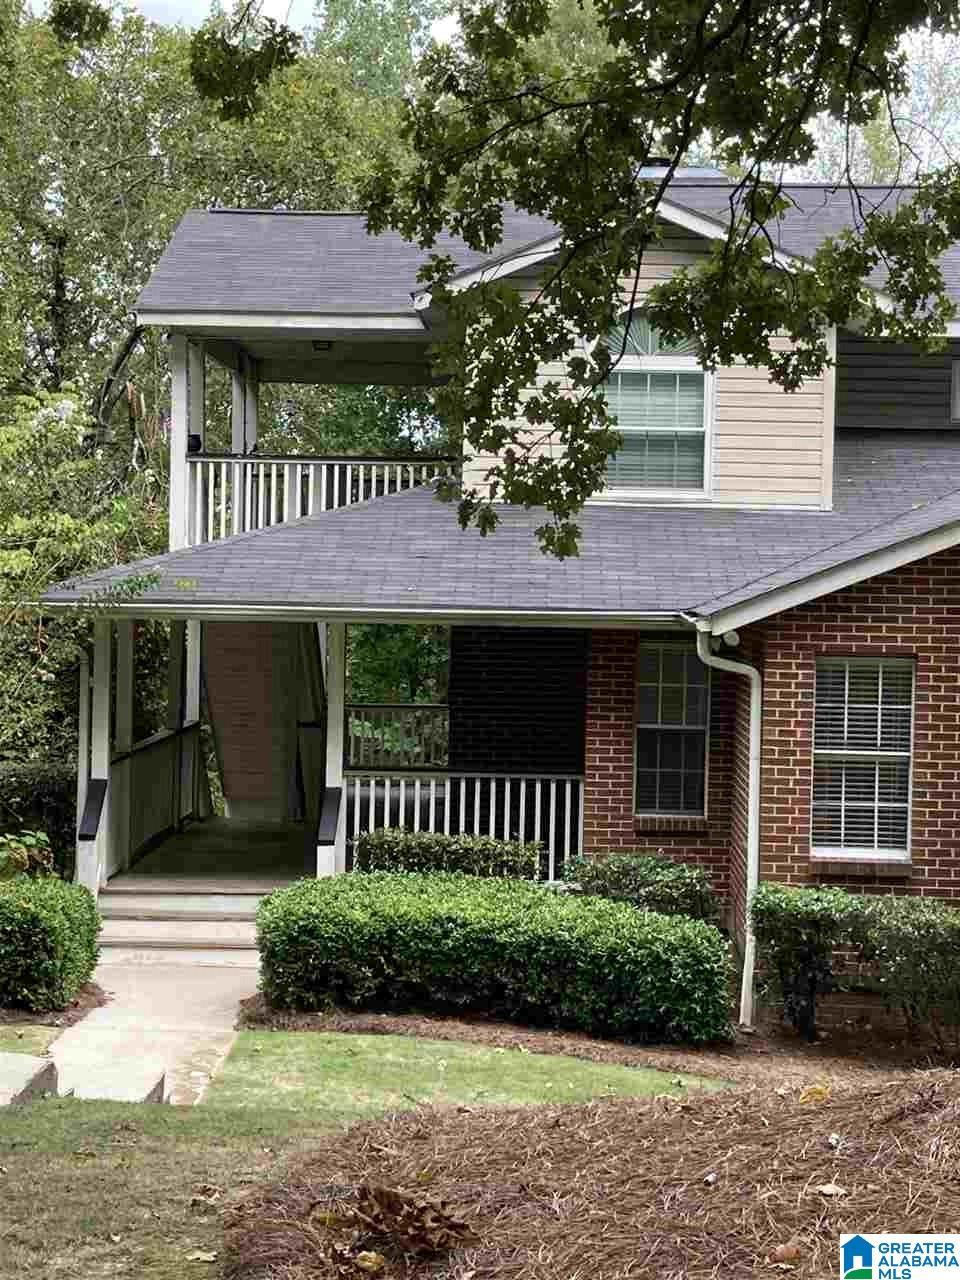 601 MORNING SUN DR, Birmingham, AL 35242 - #: 1273447